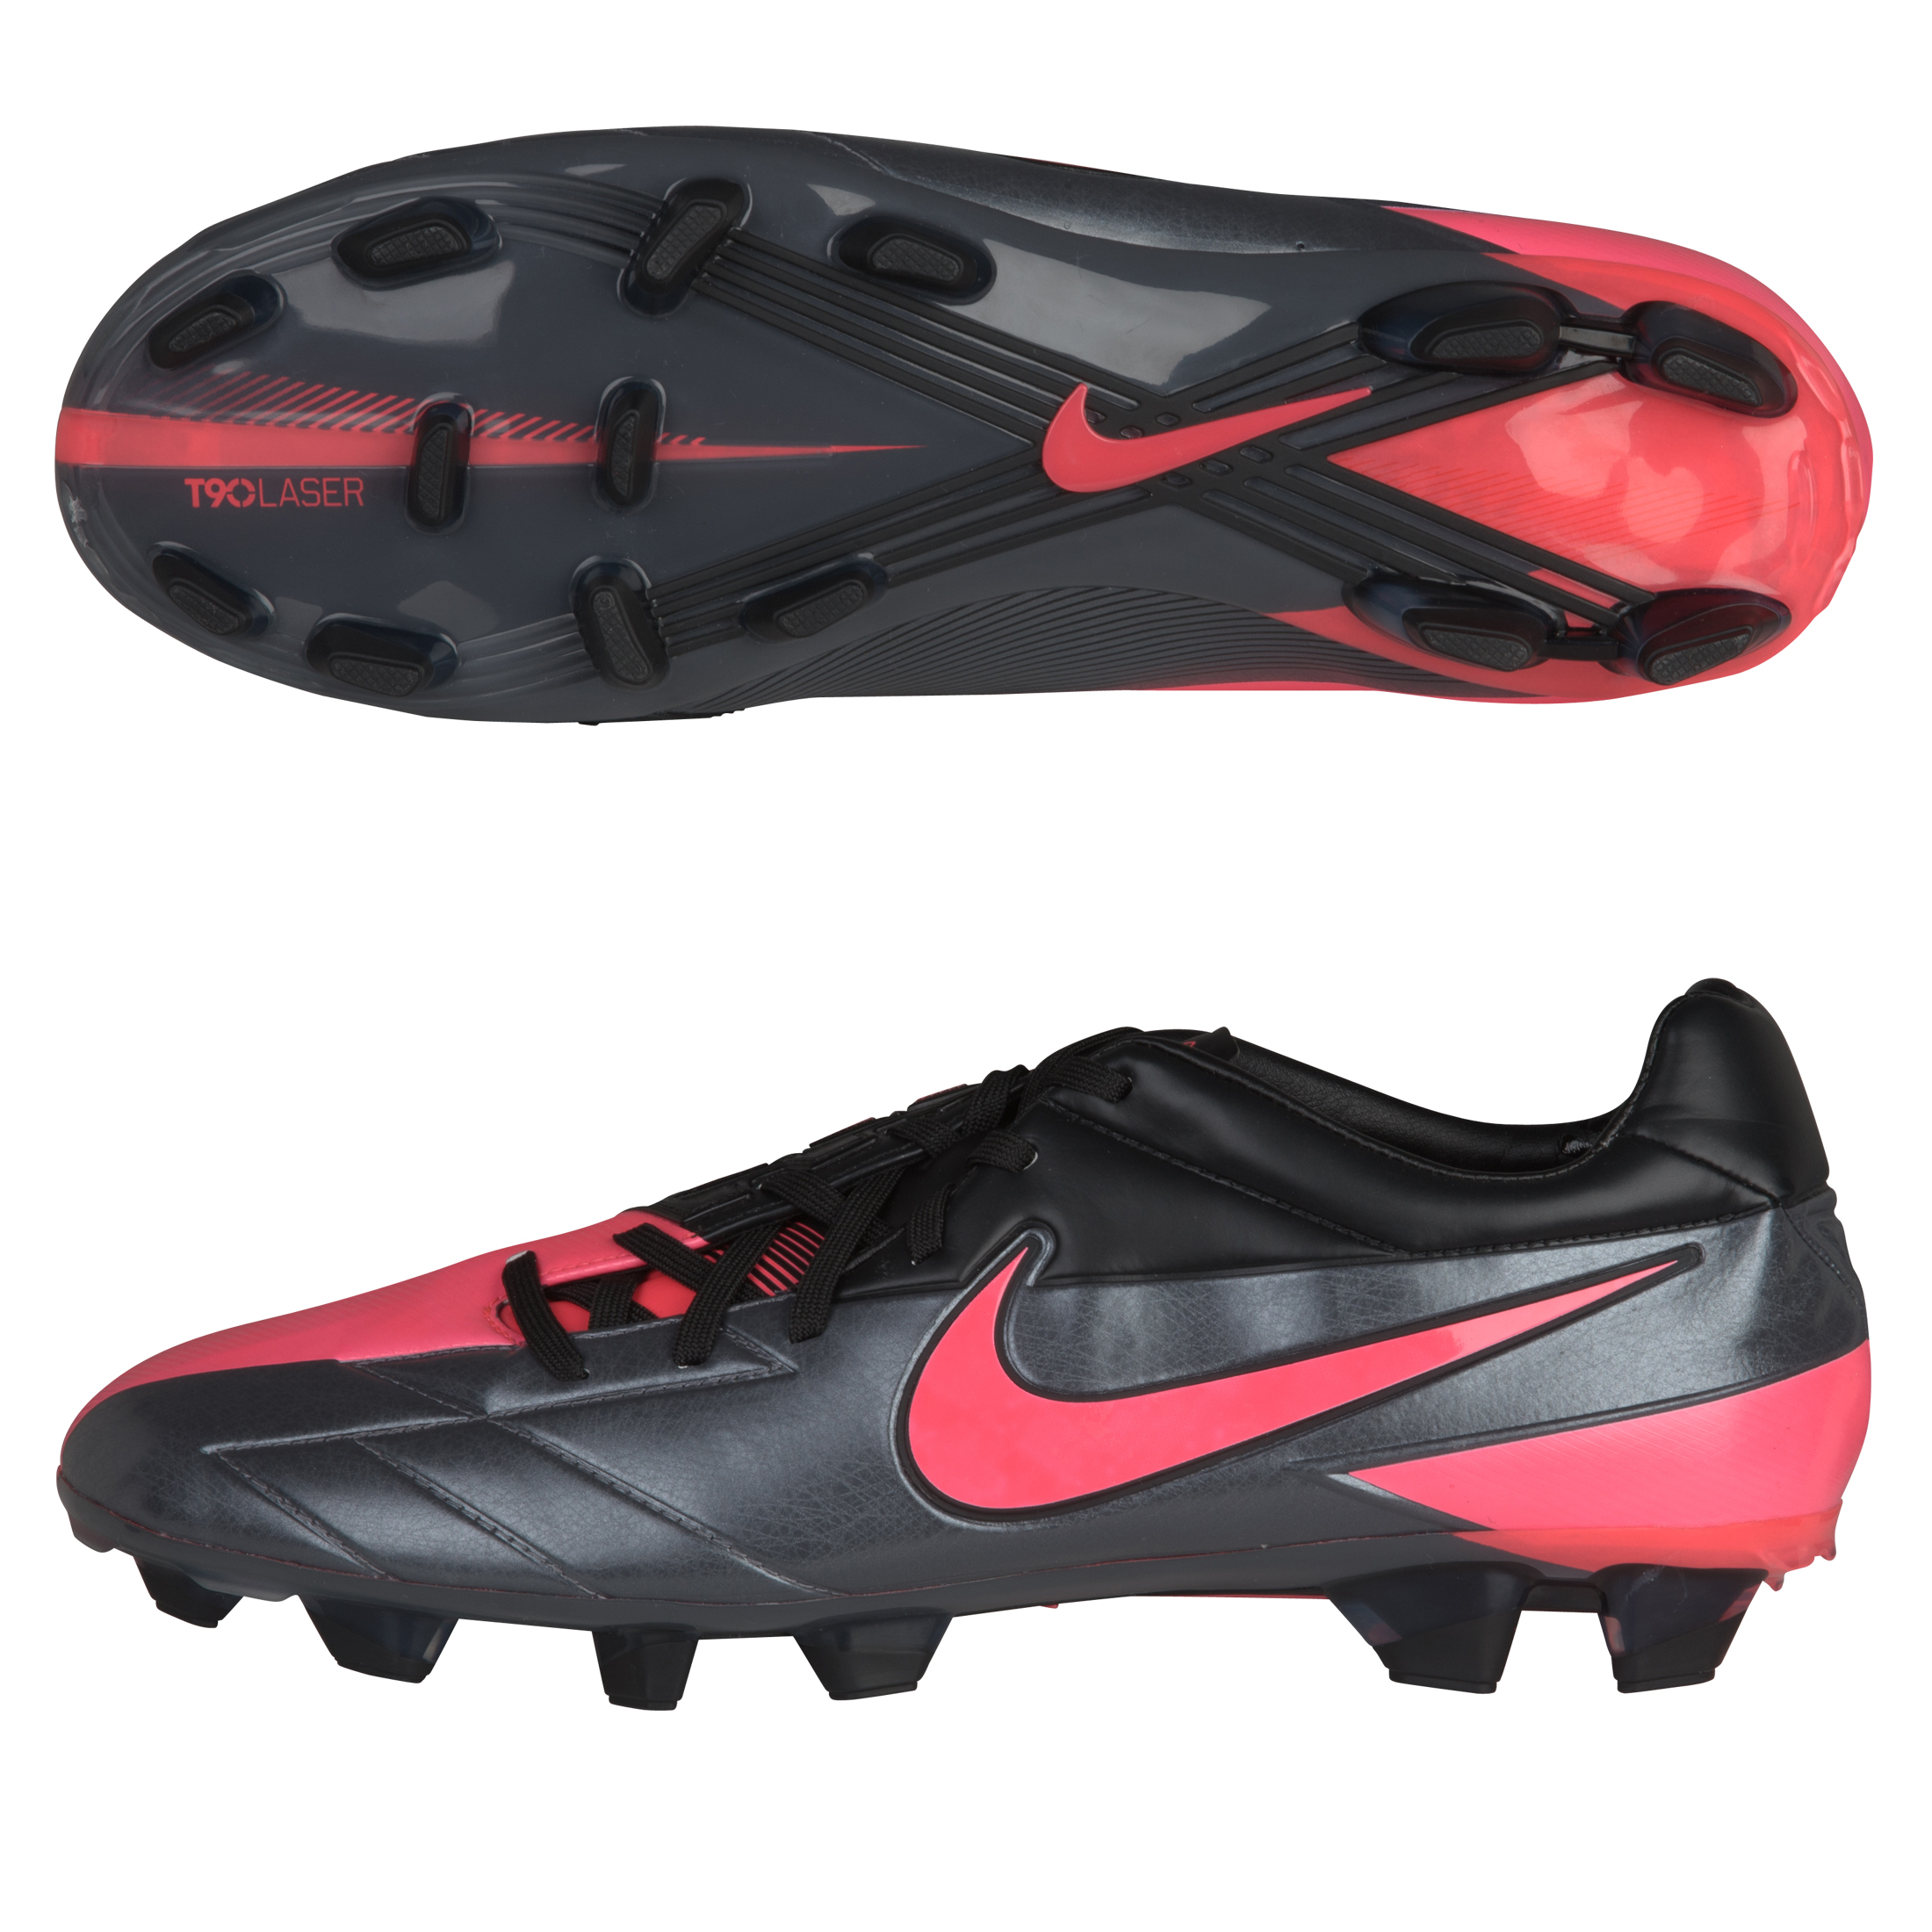 T90 Laser IV FG Dark Grey/Solar Red/Black